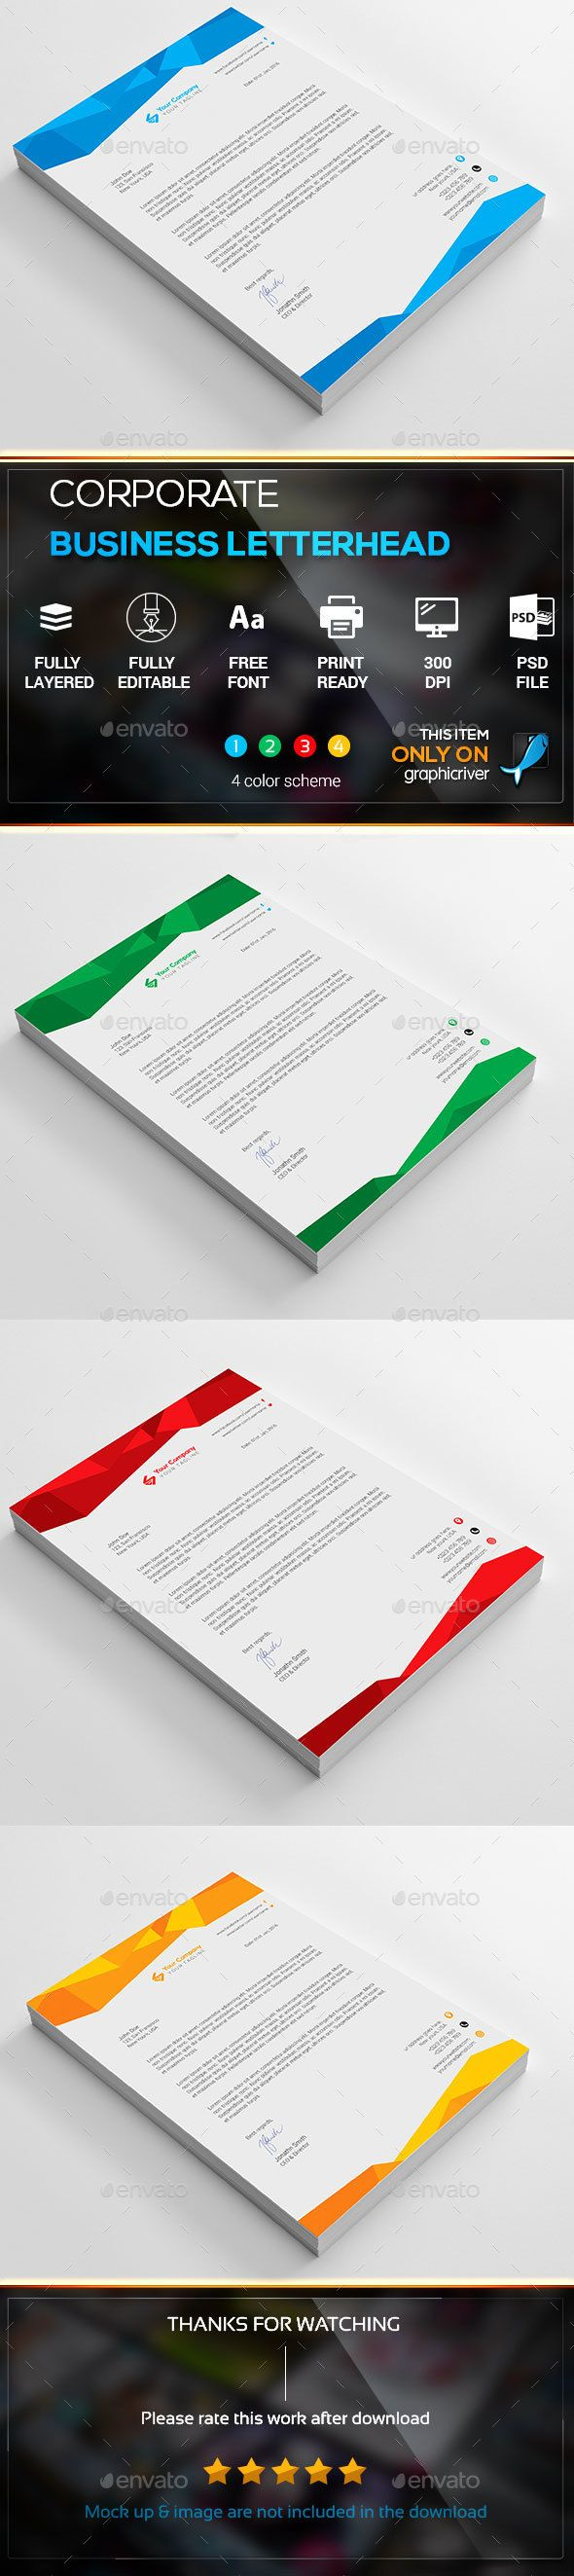 25 Trending Free Letterhead Templates Ideas On Pinterest Free